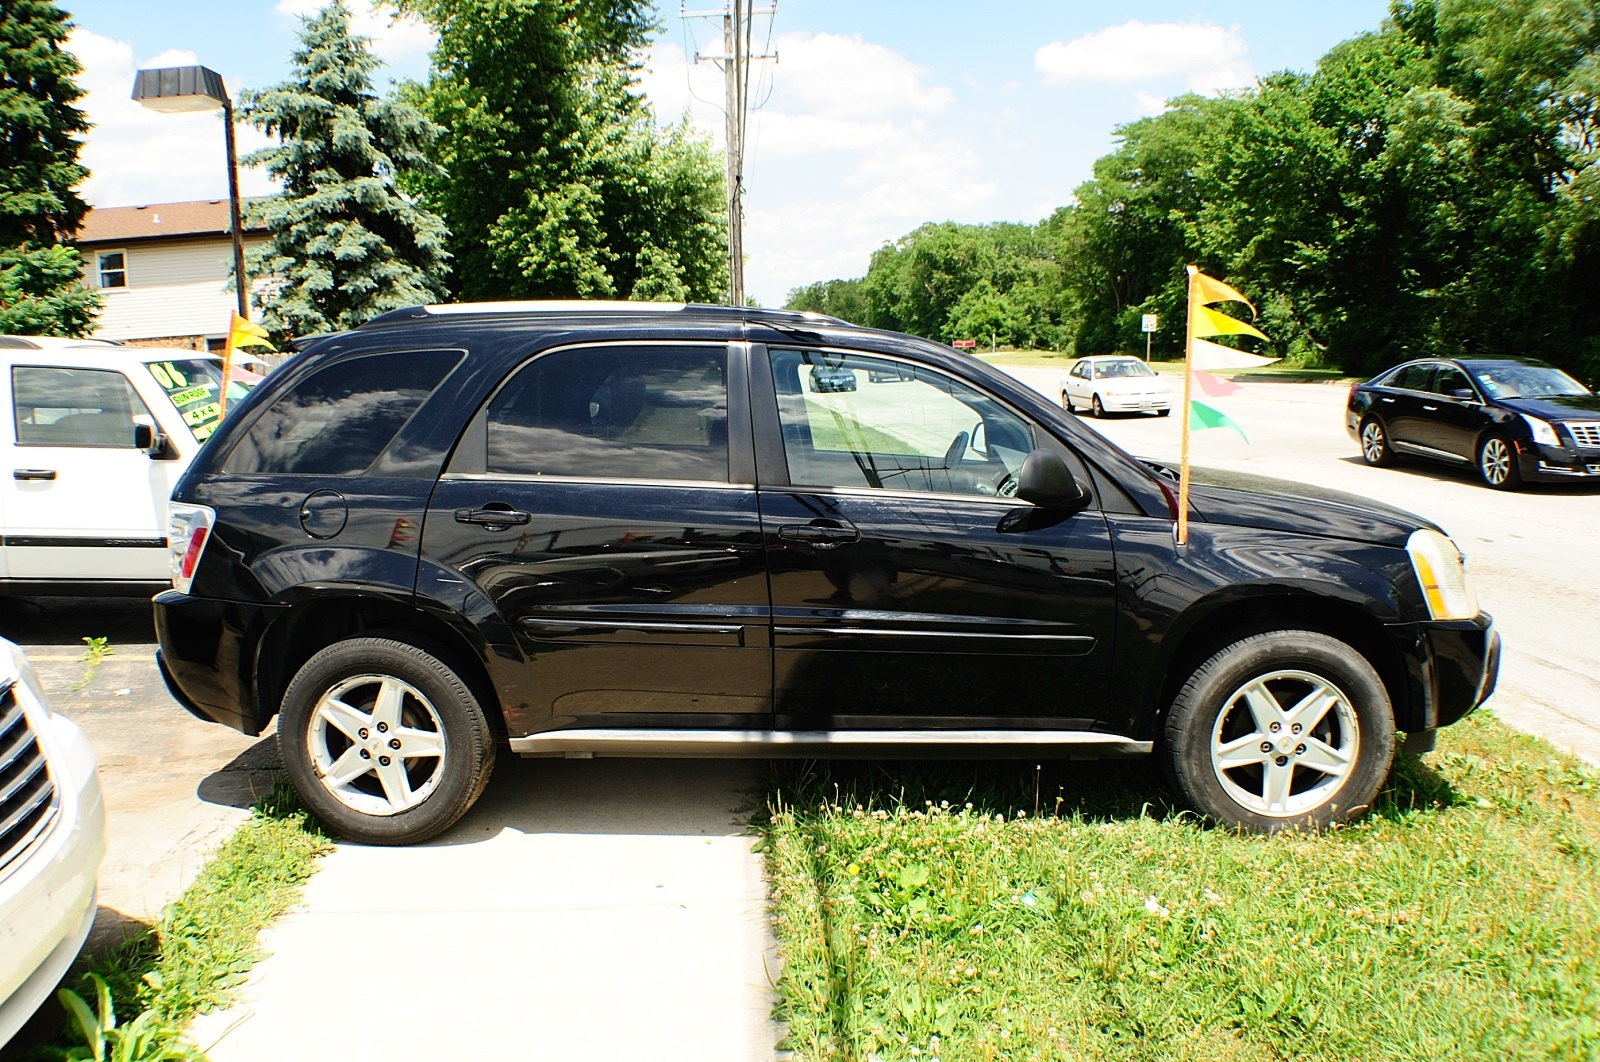 2005 Chevrolet Equinox LT Black AWD Used SUV Sale Downers Grove Carpentersville Cicero Oak Park